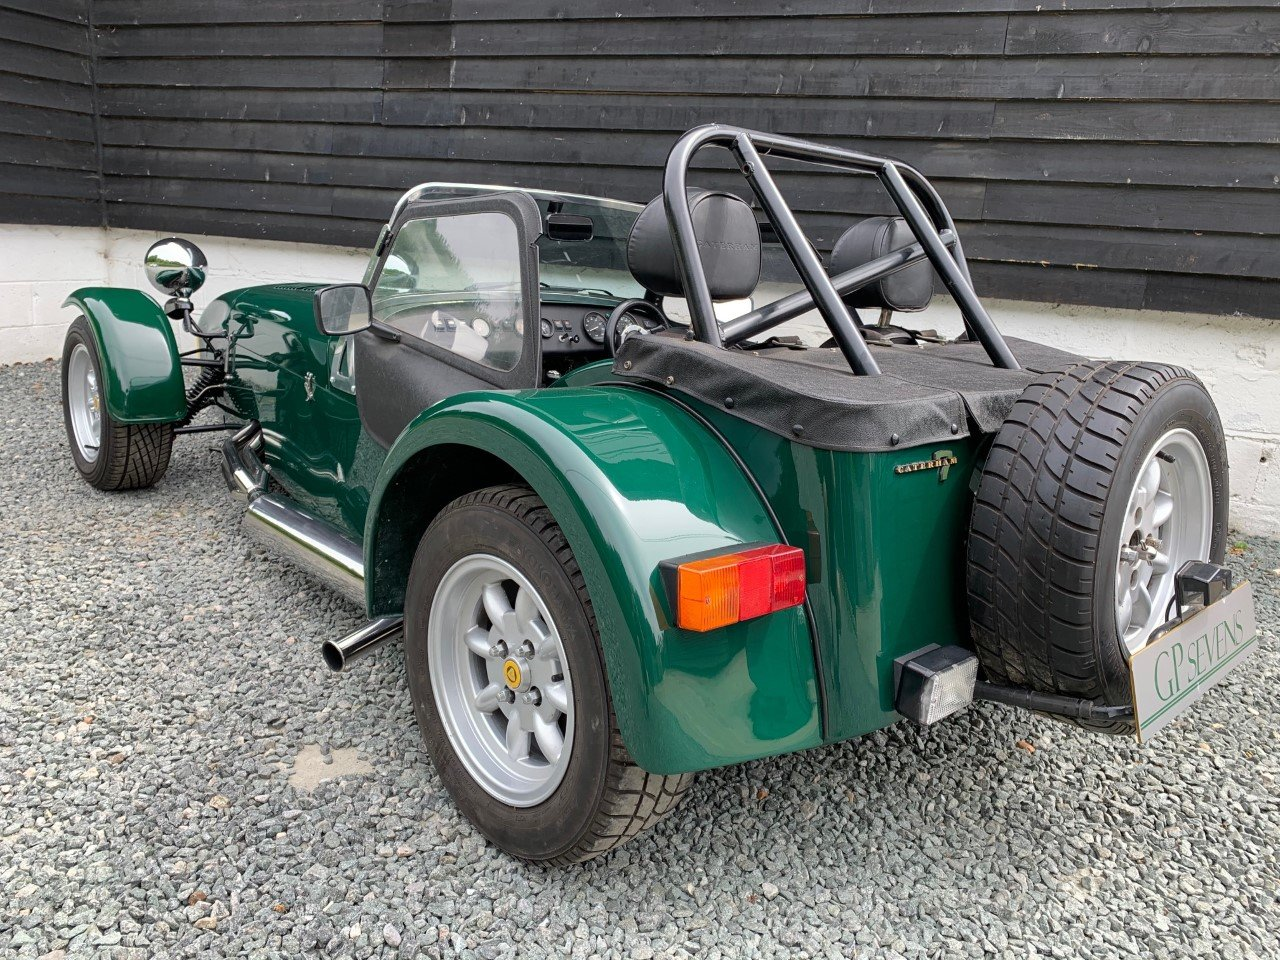 1998 Caterham Classic 1.6 Ford X Flow 100bhp 4 speed For Sale (picture 2 of 6)